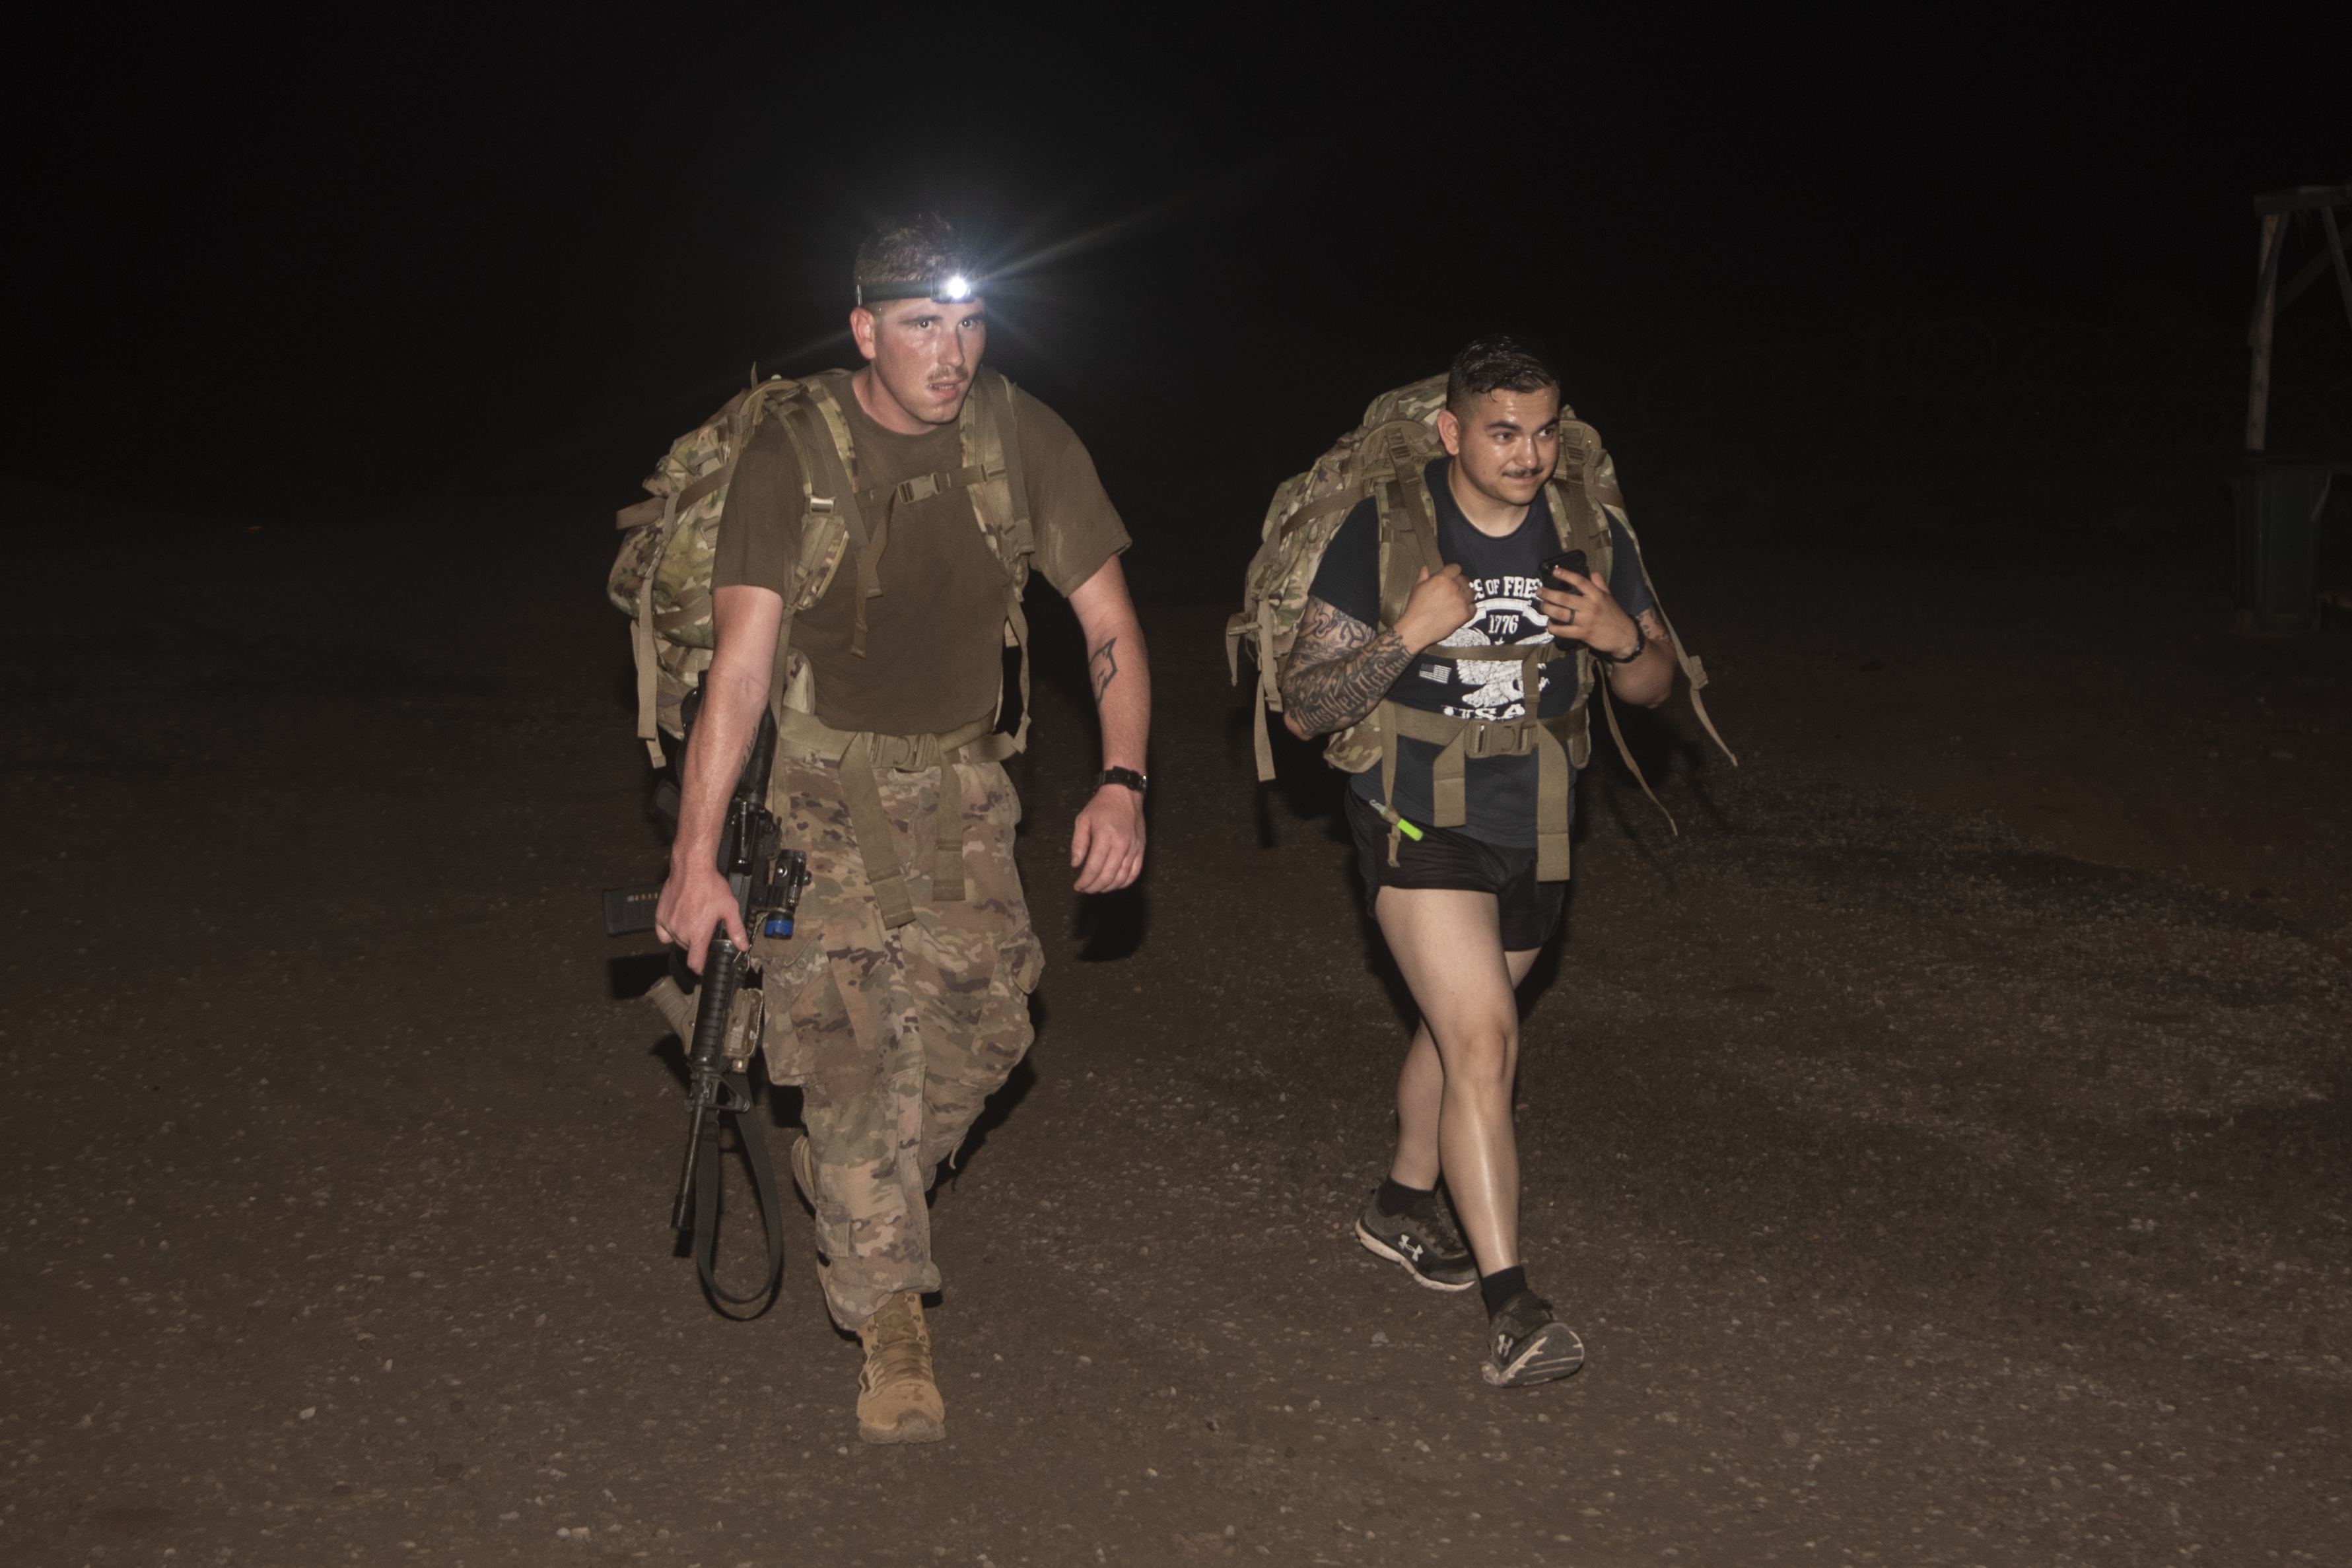 U.S. Army Soldiers assigned to 1-200th Infantry Battalion, Task Force Guardian, Combined Joint Task Force-Horn of Africa, ruck march during the Bataan Memorial Death March at Chabelley Airfield, Djibouti, March 15, 2020. The New Mexico National Guard's 1-200th Infantry Battalion hosts an annual Bataan Memorial Death March at White Sands National Park, New Mexico, to honor the Prisoner of War Soldiers who were force-marched in the Philippines during World War II. (U.S. Air Force photo by Senior Airman Gage Daniel)